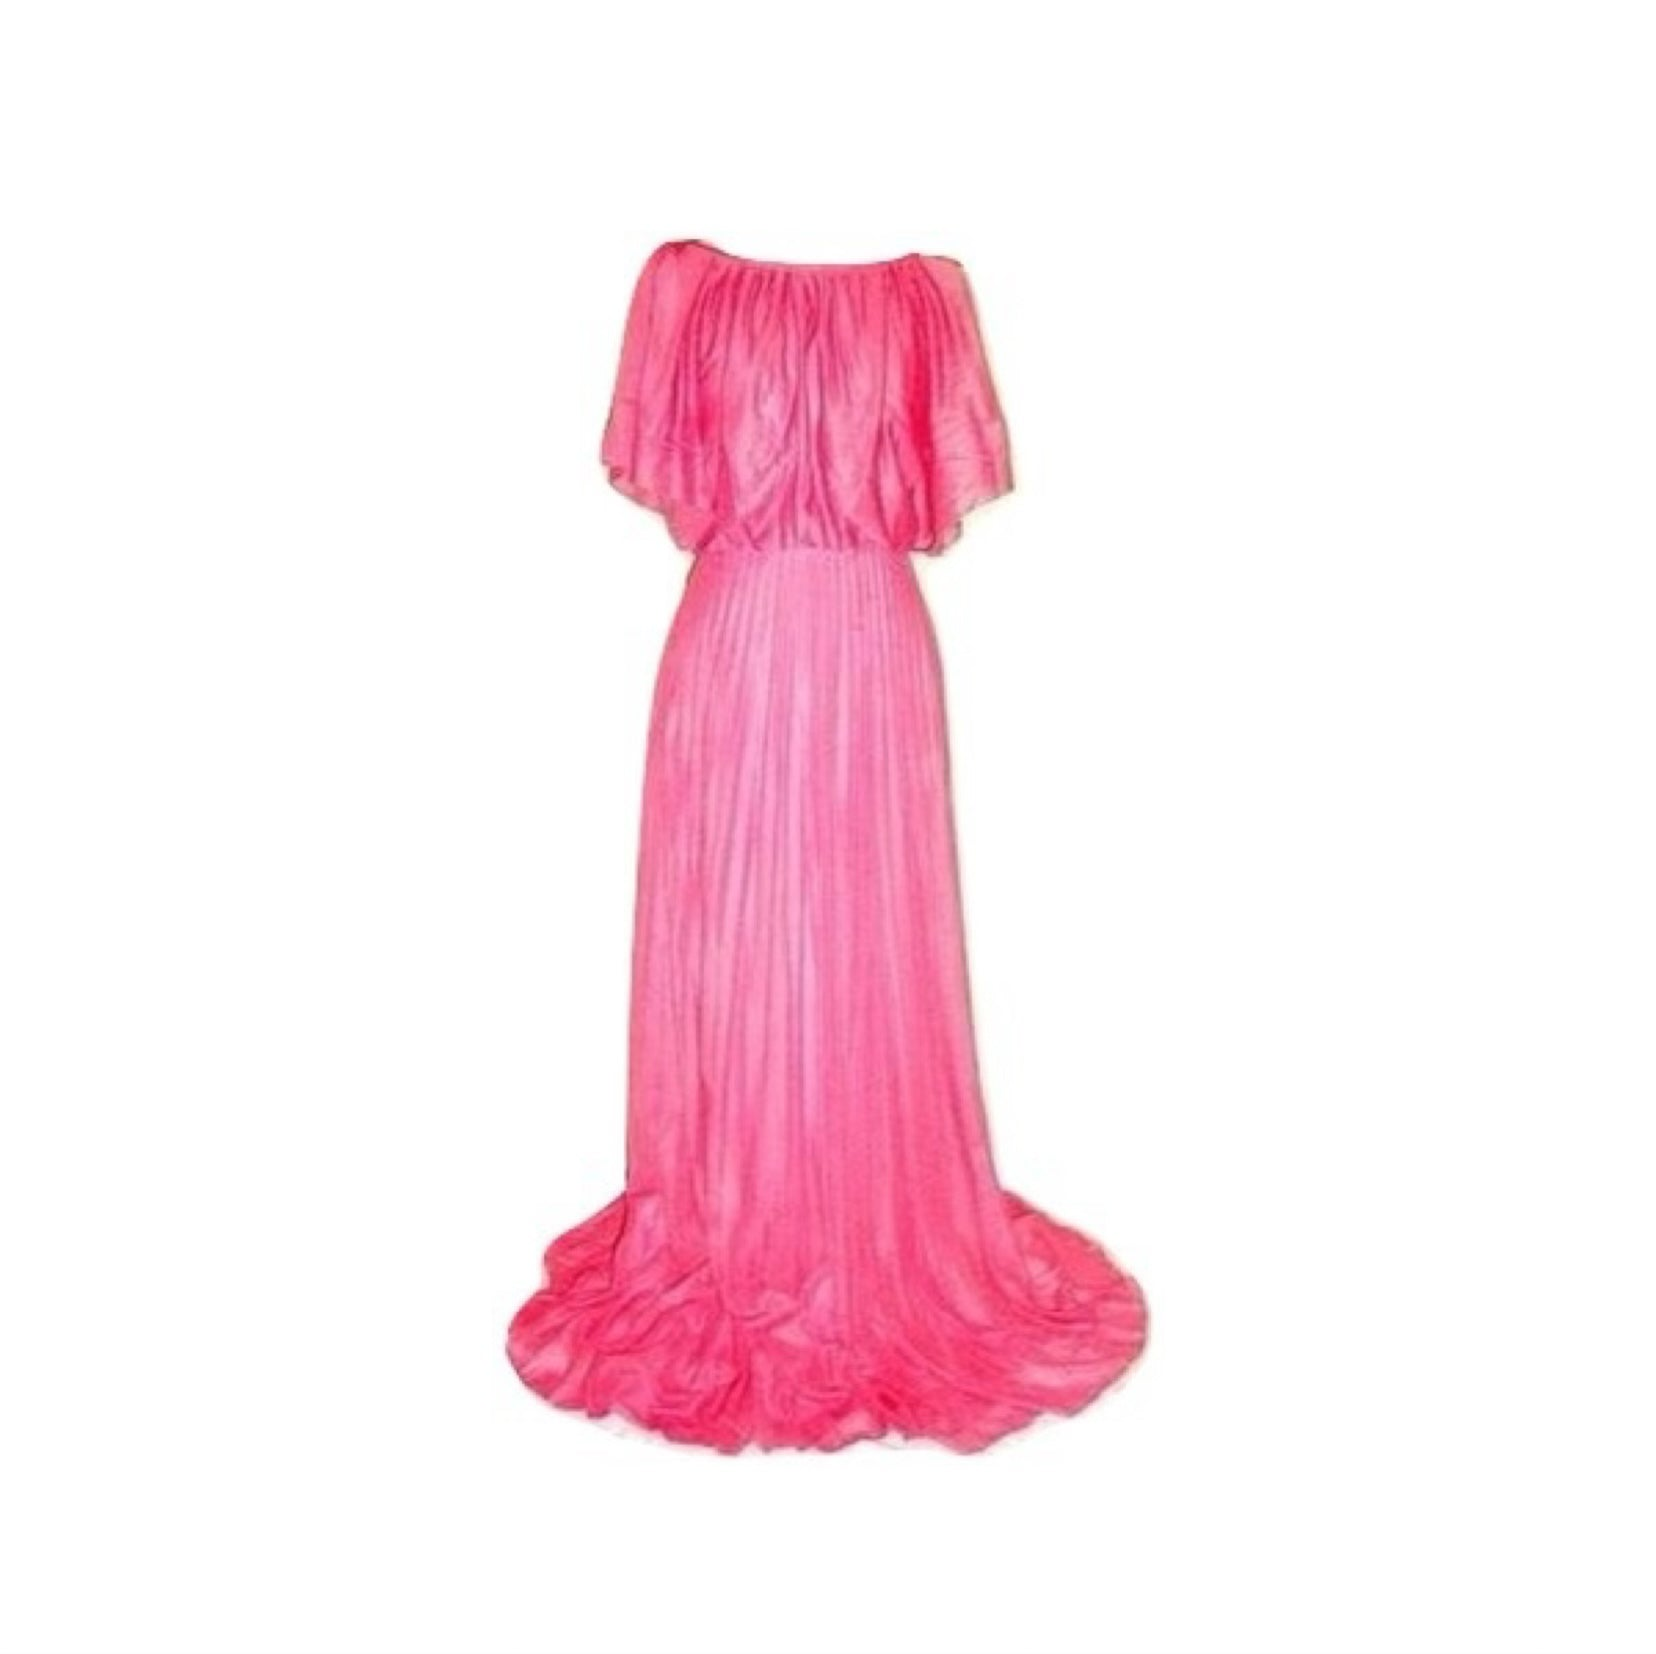 Vintage Pink Tie Shoulder Crepe Pleated Skirt Gown